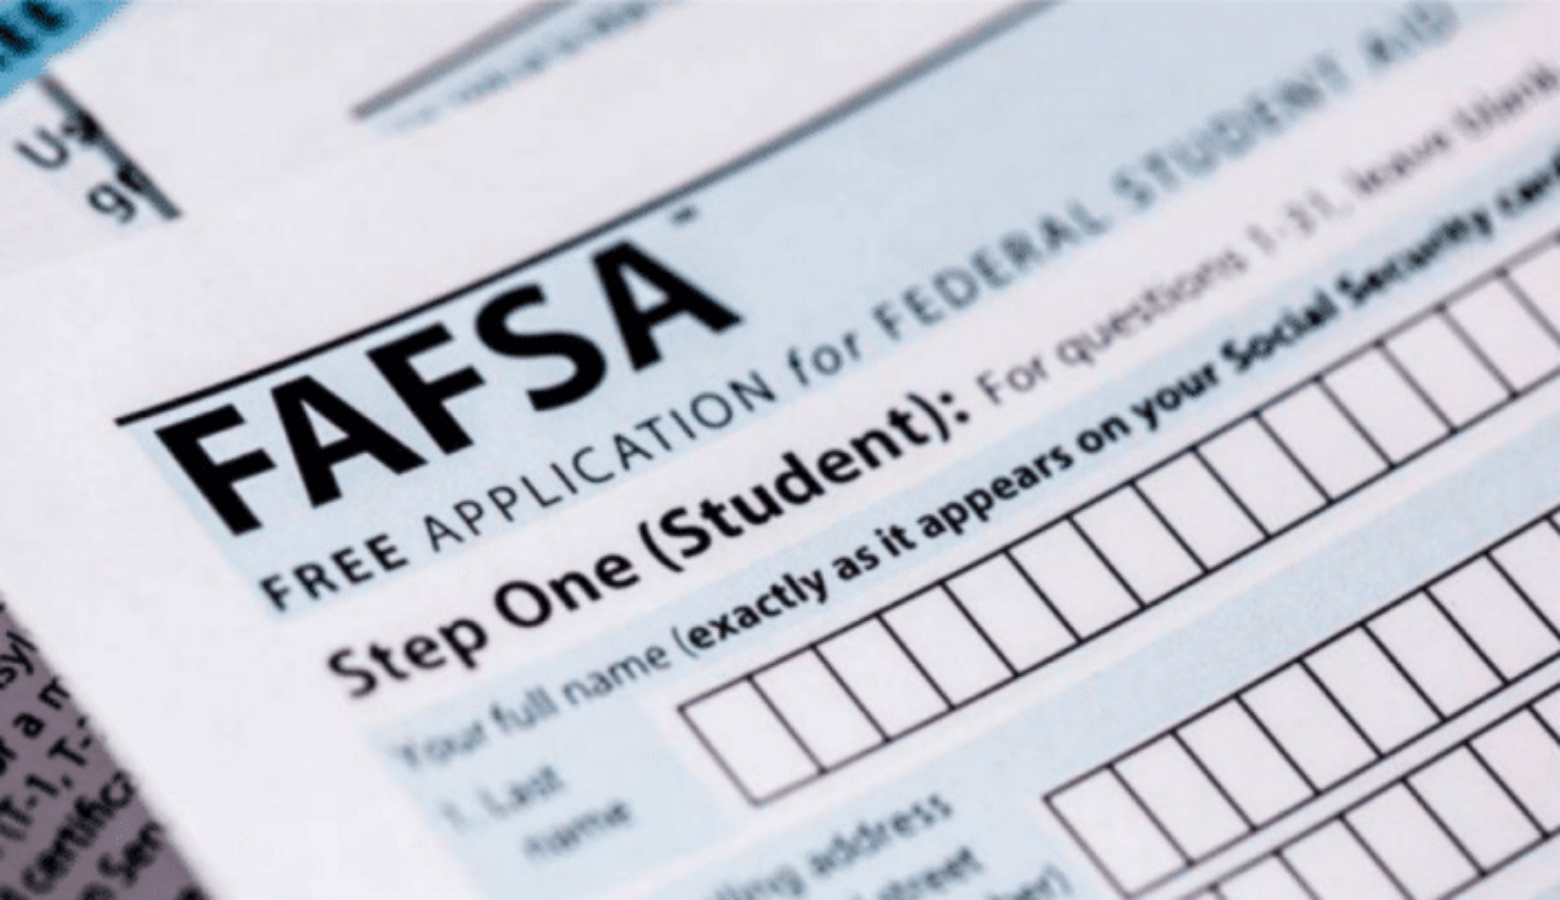 FASFA application. Image: Public Domain